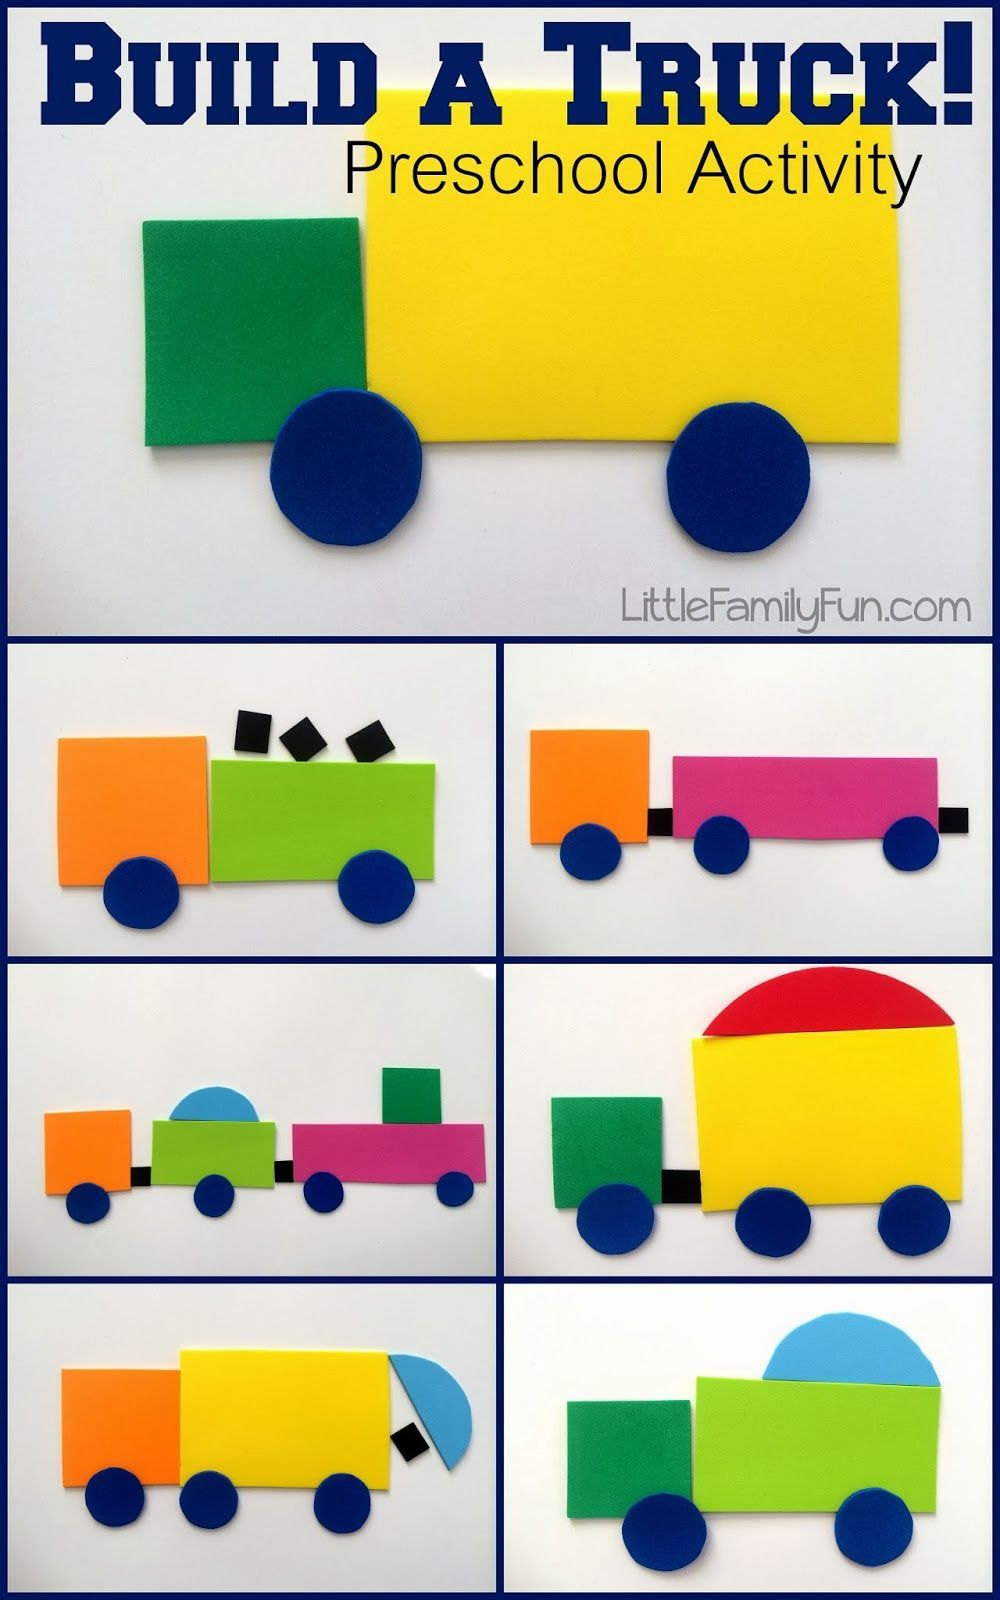 Build a truck fun way to review shapes with preschoolers for Finding a builder